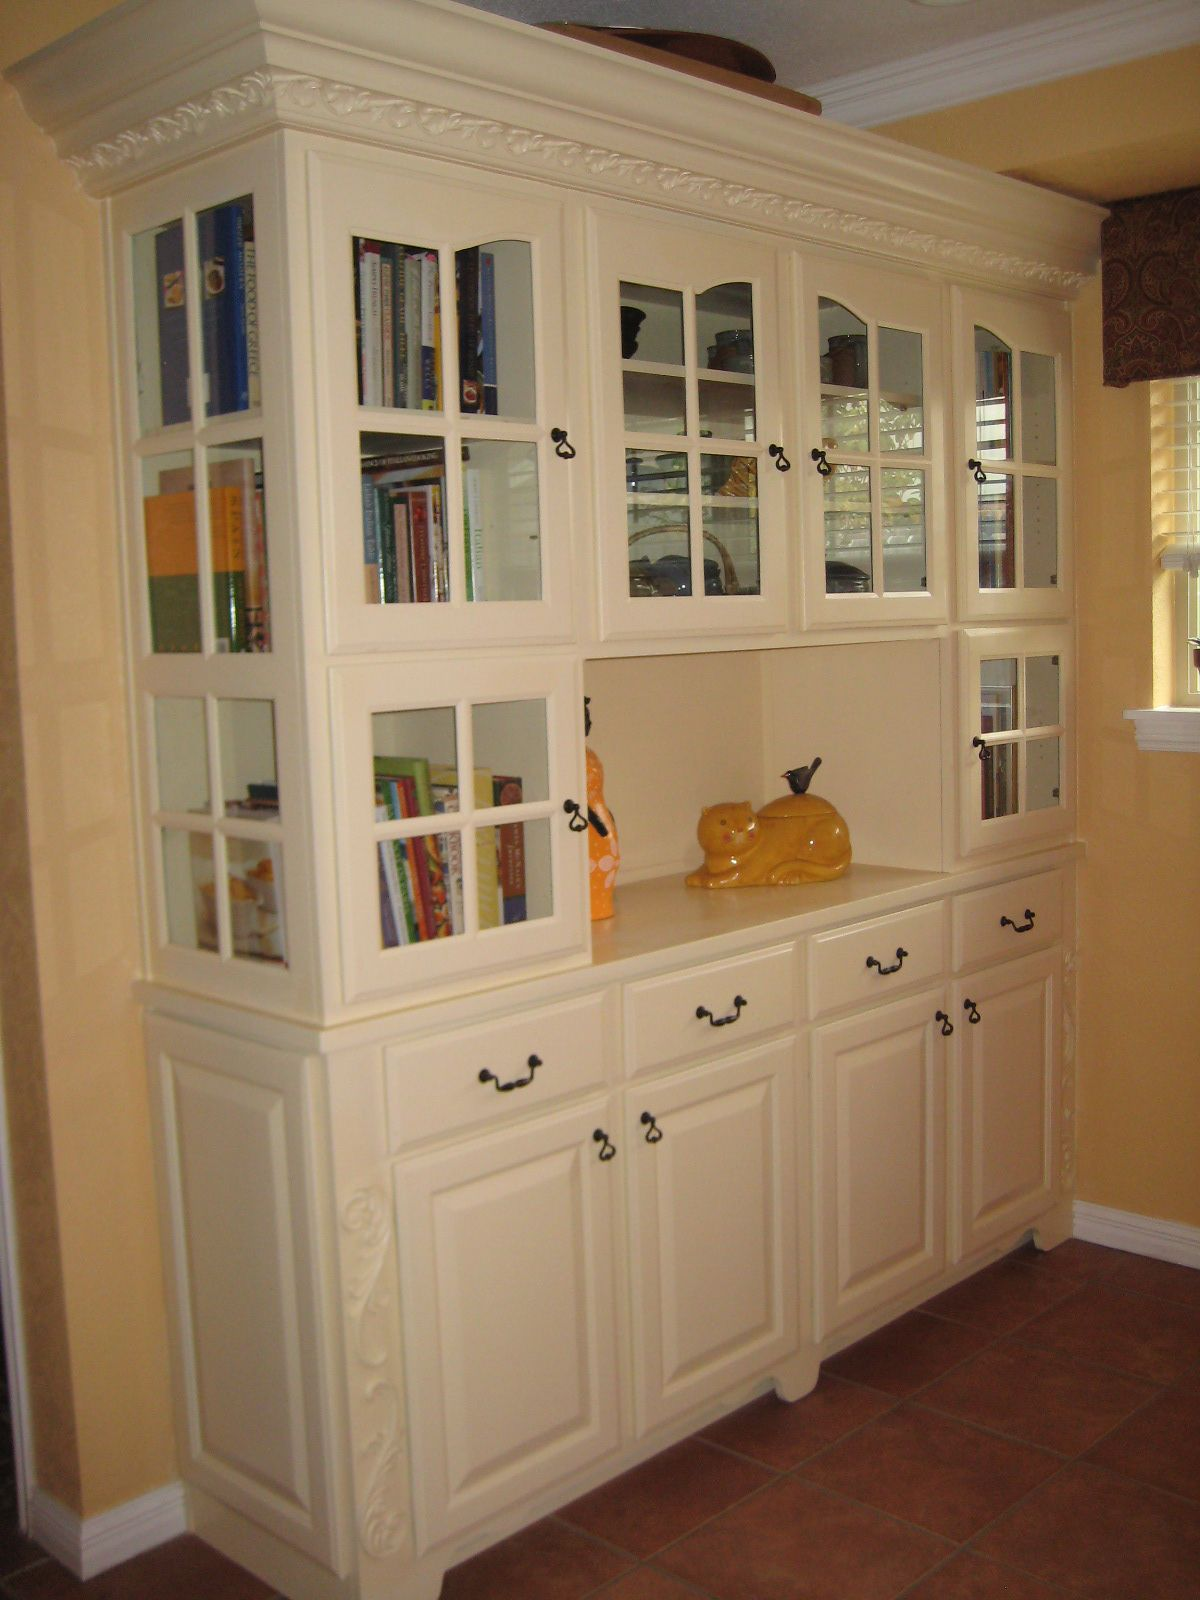 Cookbook Cabinet